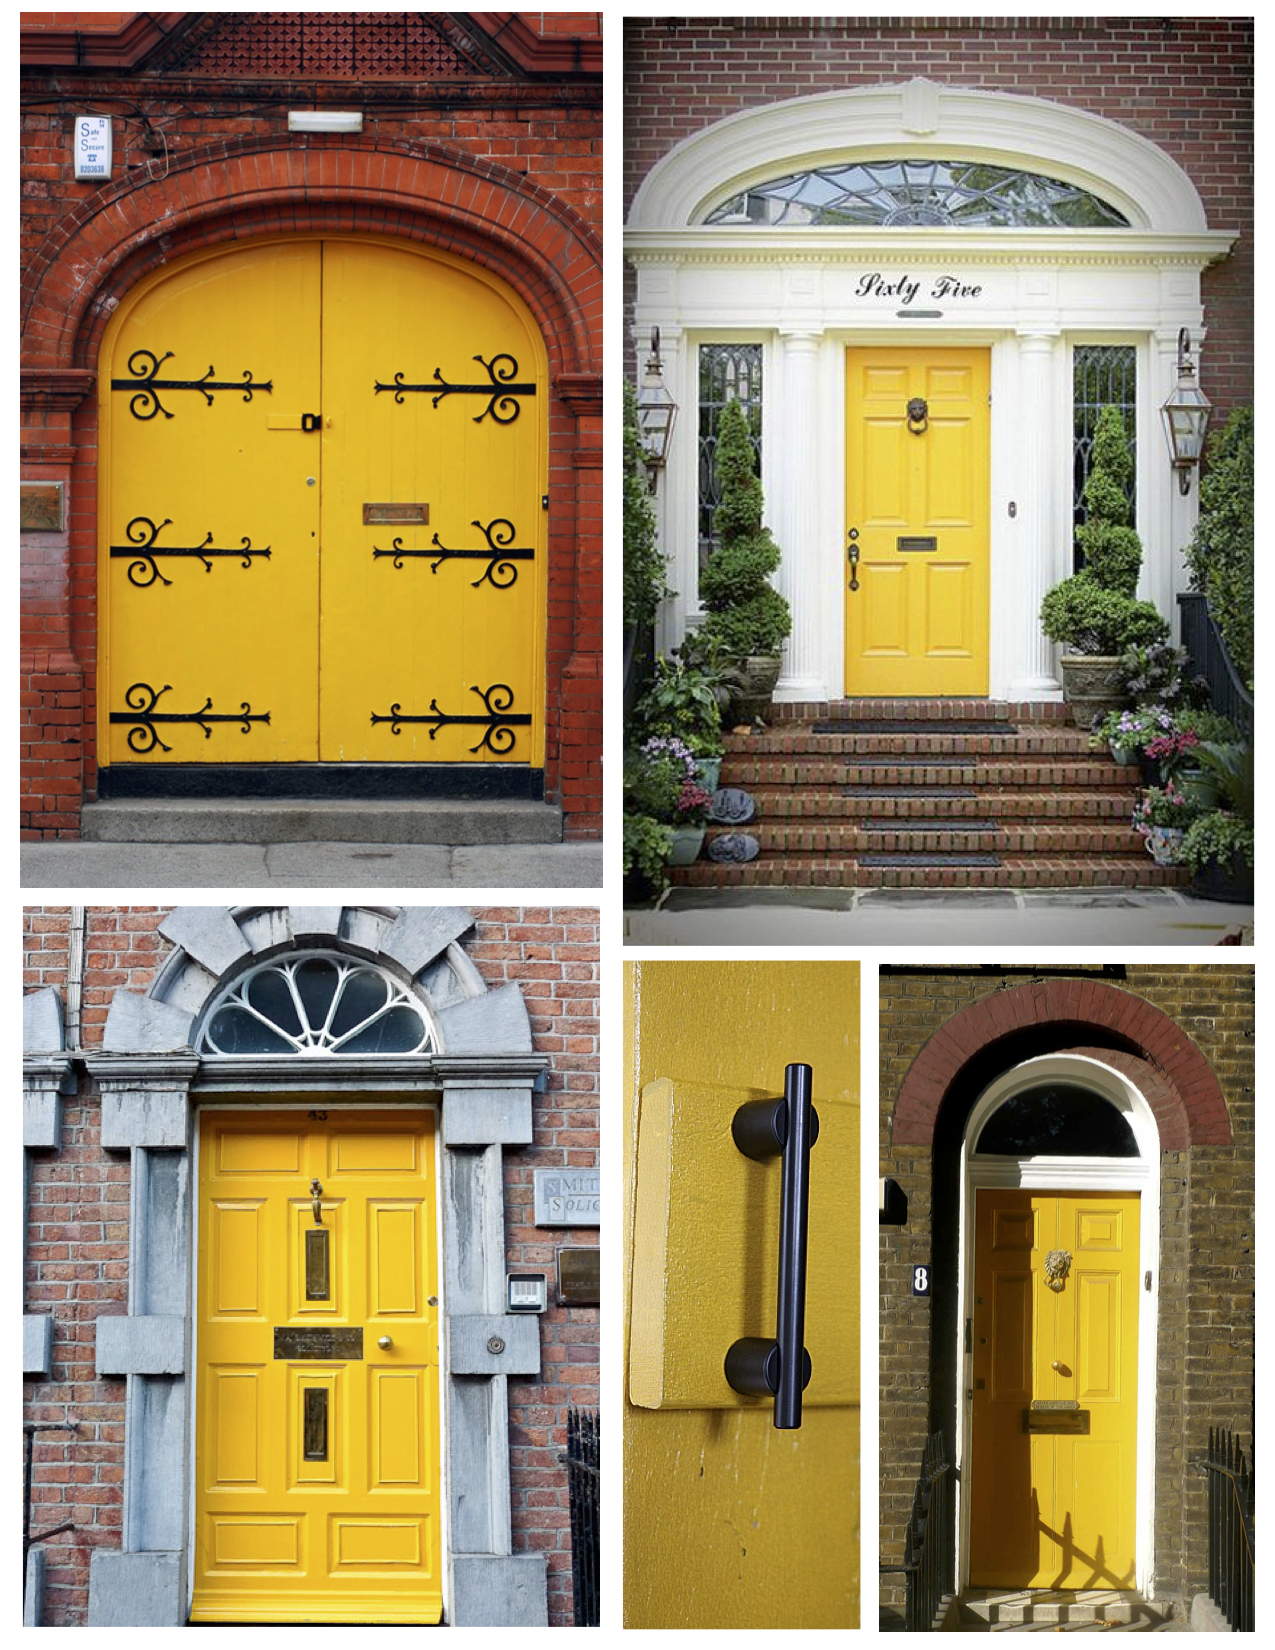 Exterior Color Inspirations: The Bright & Bold Yellow Door ...